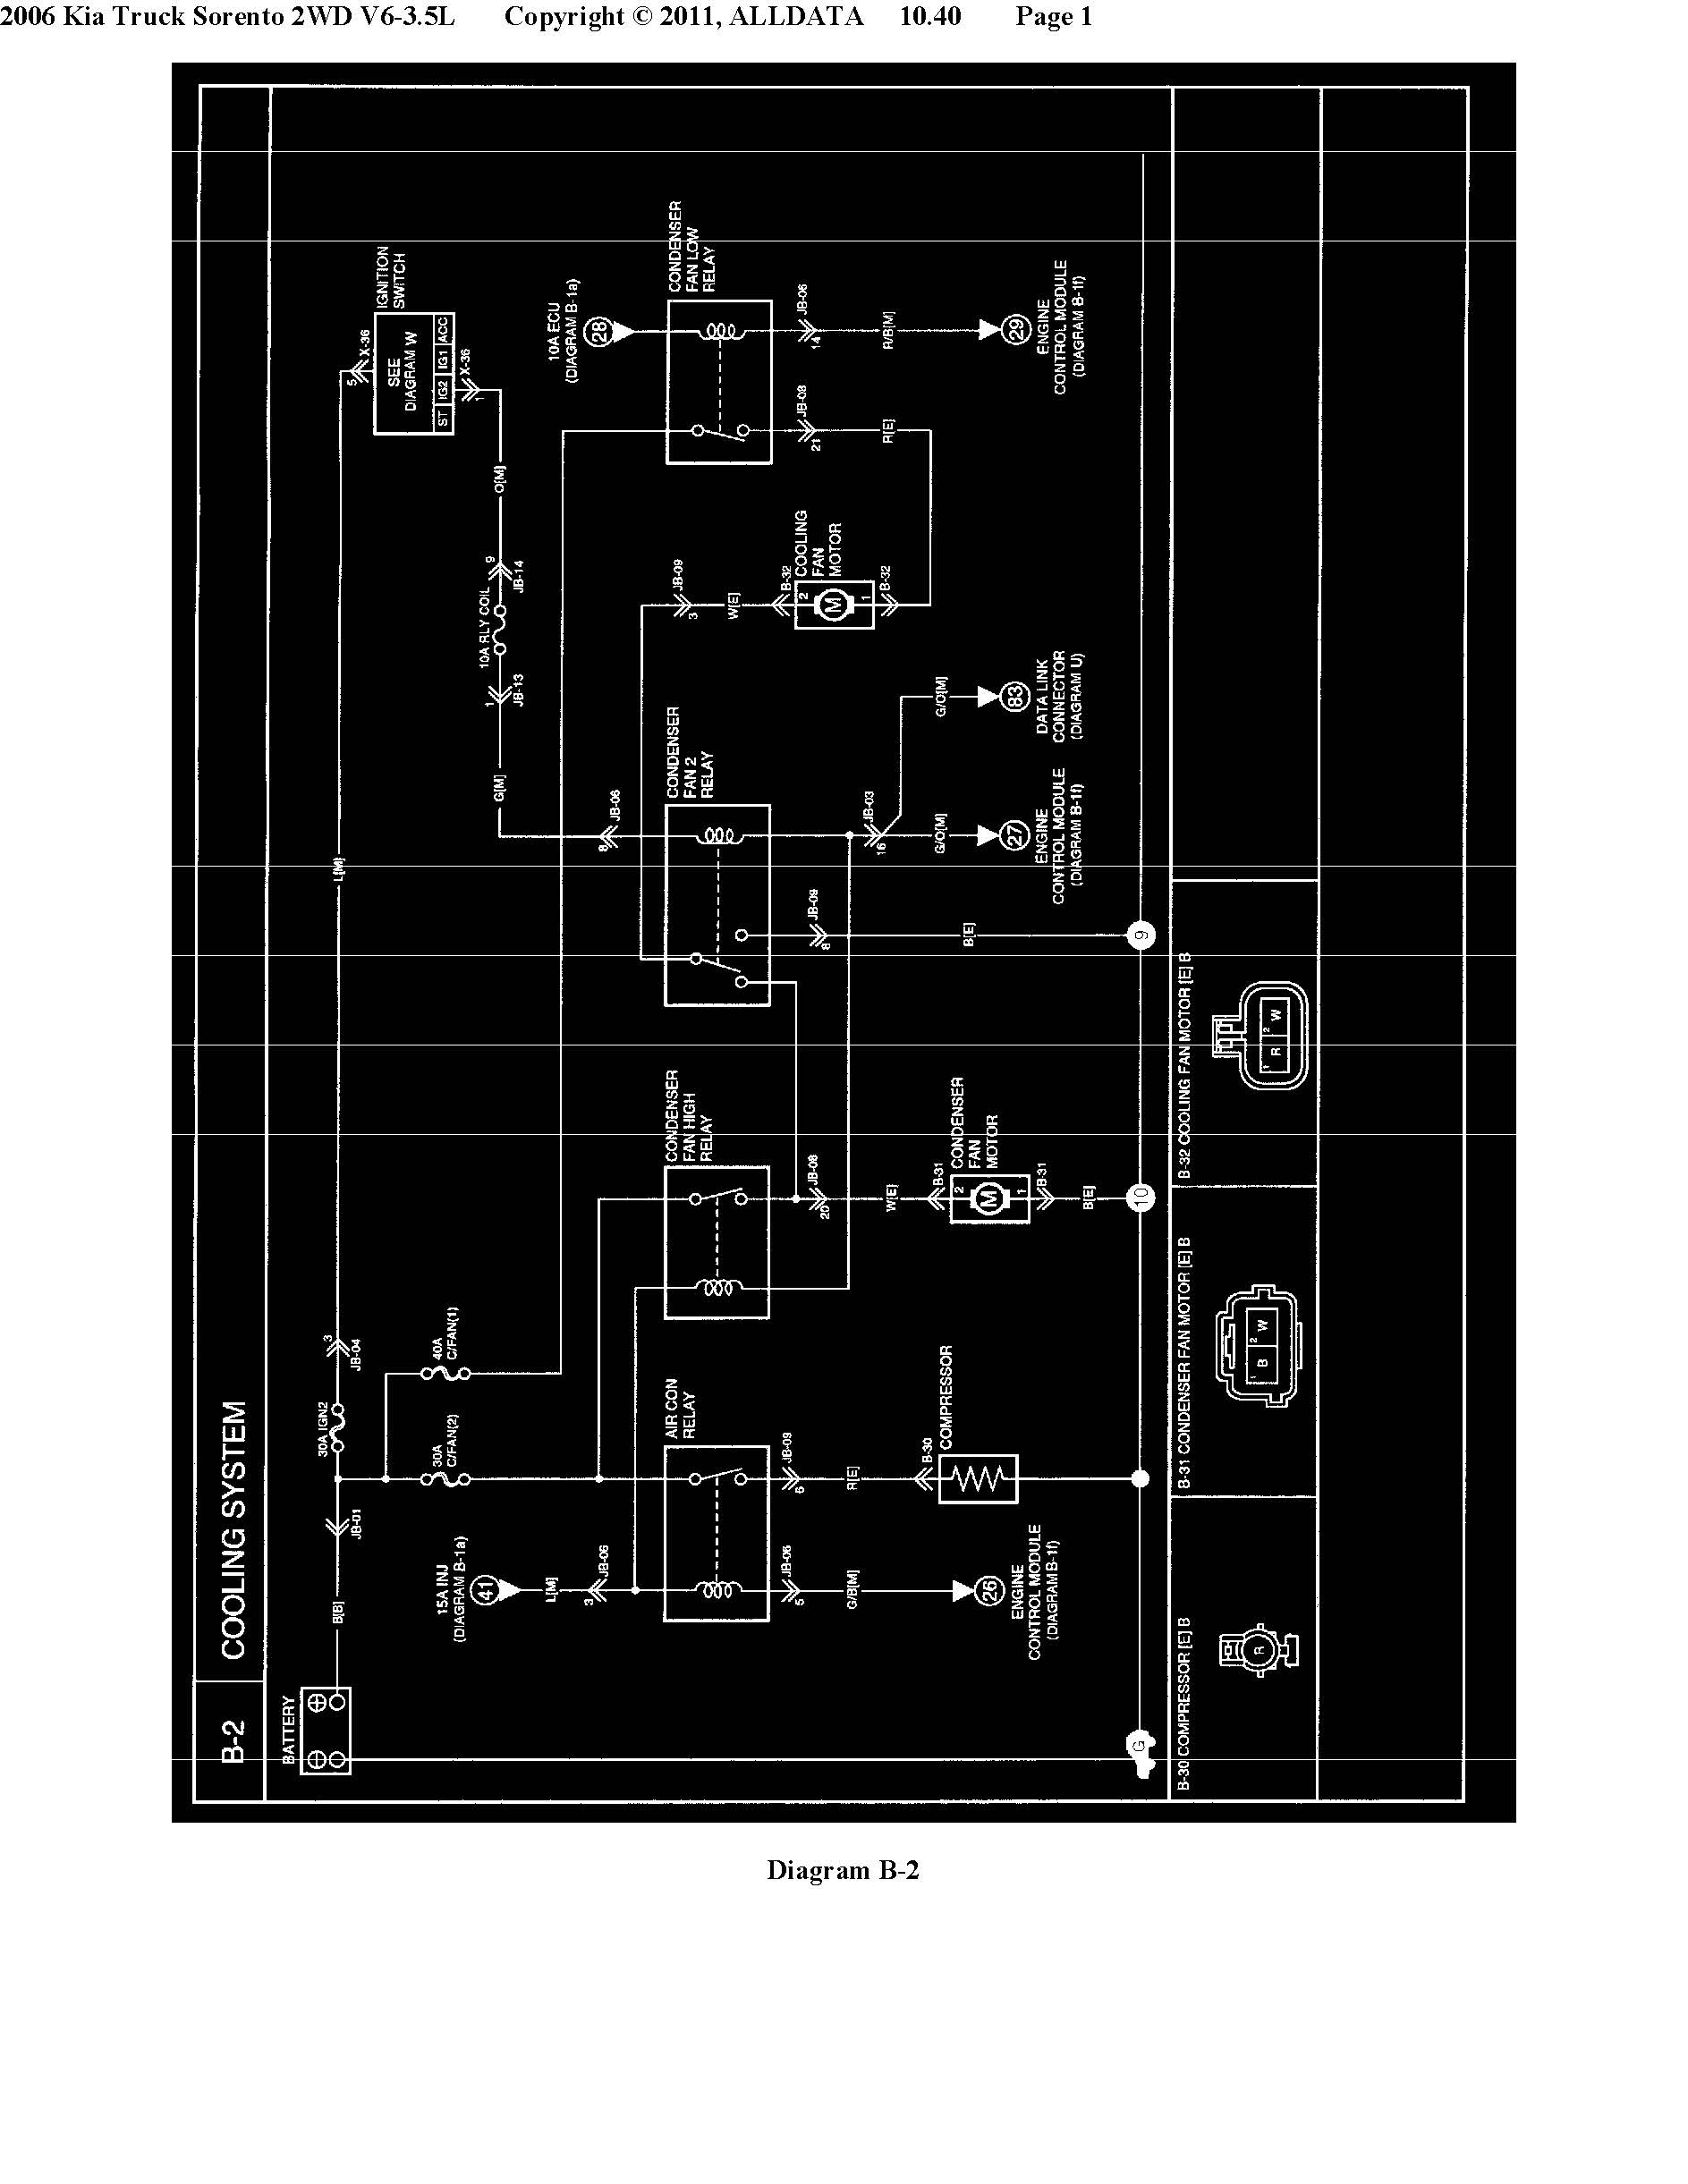 Diagram 2006 Kia Sorento Wiring Diagram Full Version Hd Quality Wiring Diagram Diagramikardv Ninfeaeventi It